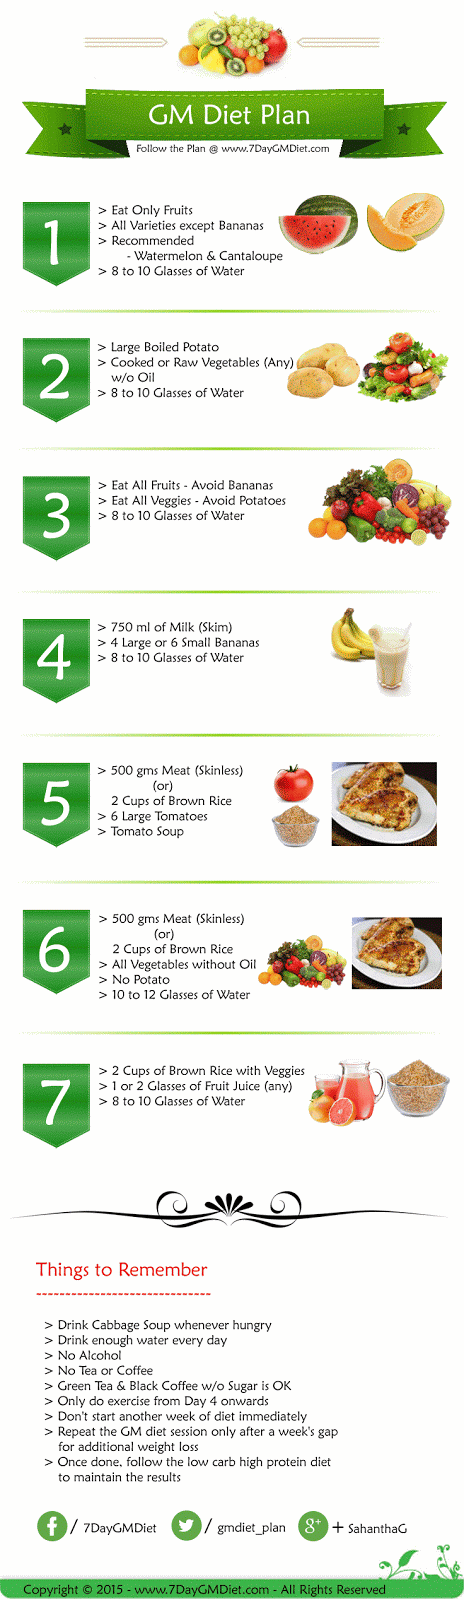 GM Diet Plan For Weight Loss General Motors Chart 7 Days Menu